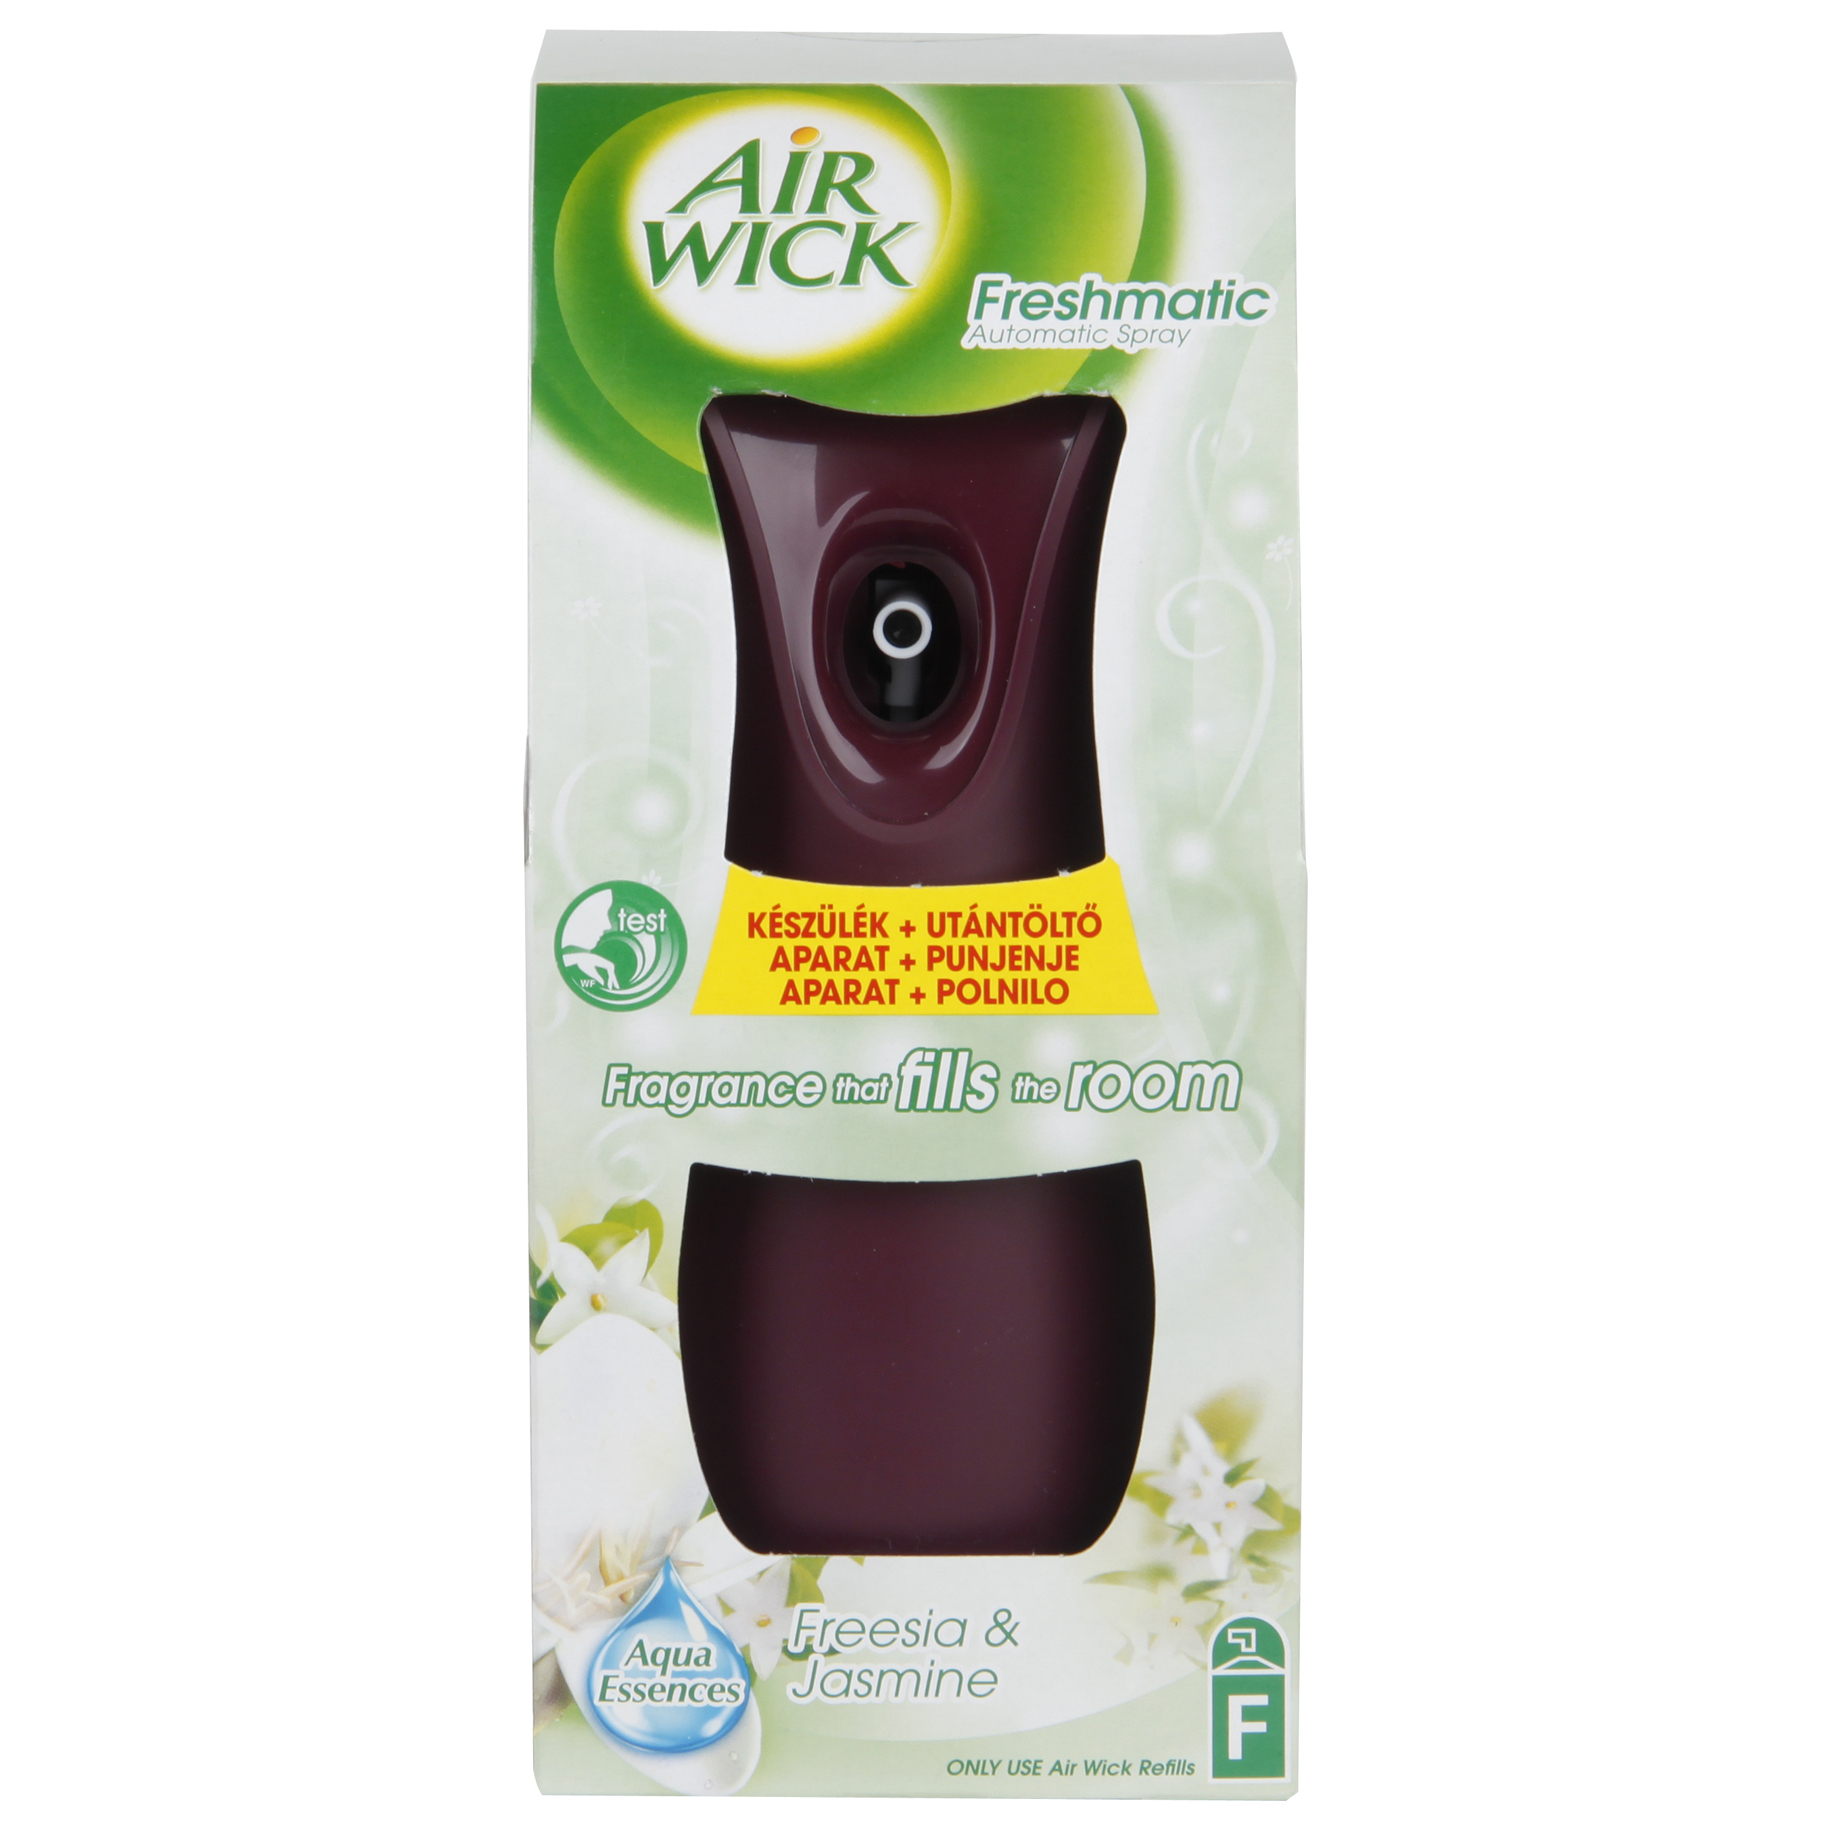 Air Wick FreshMatic sada (strojek + náplň 250 ml)